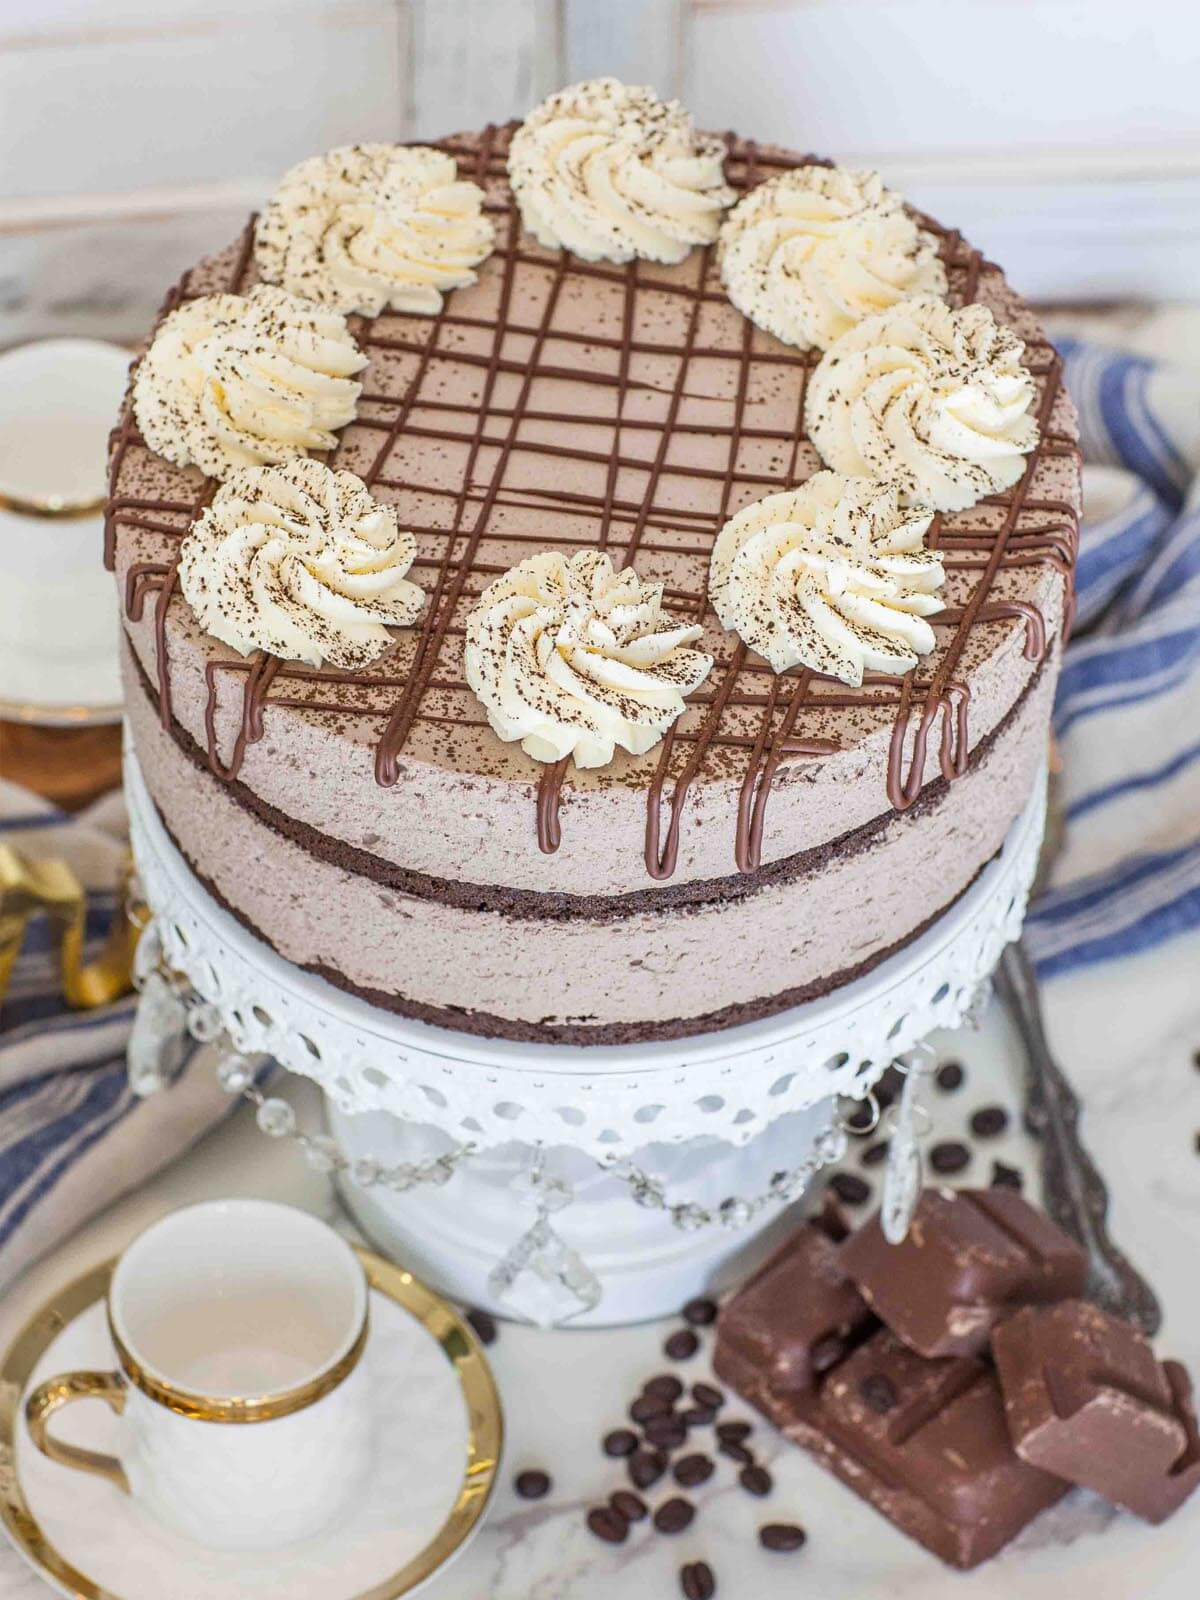 keto chocolate mousse cake with keto whipped cream